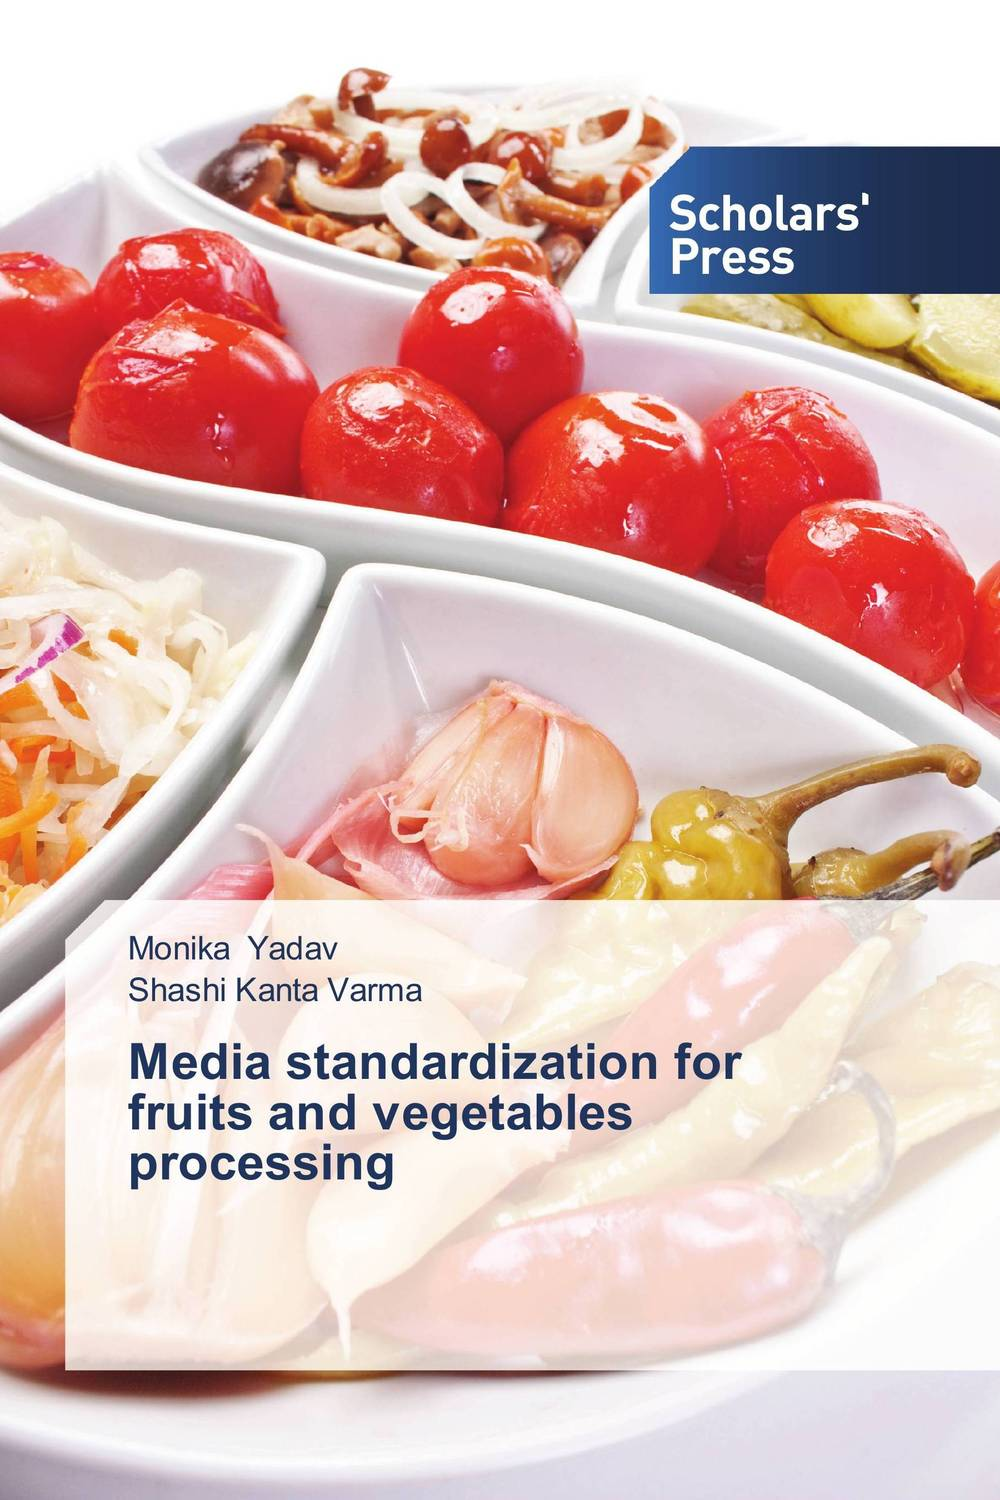 Media standardization for fruits and vegetables processing